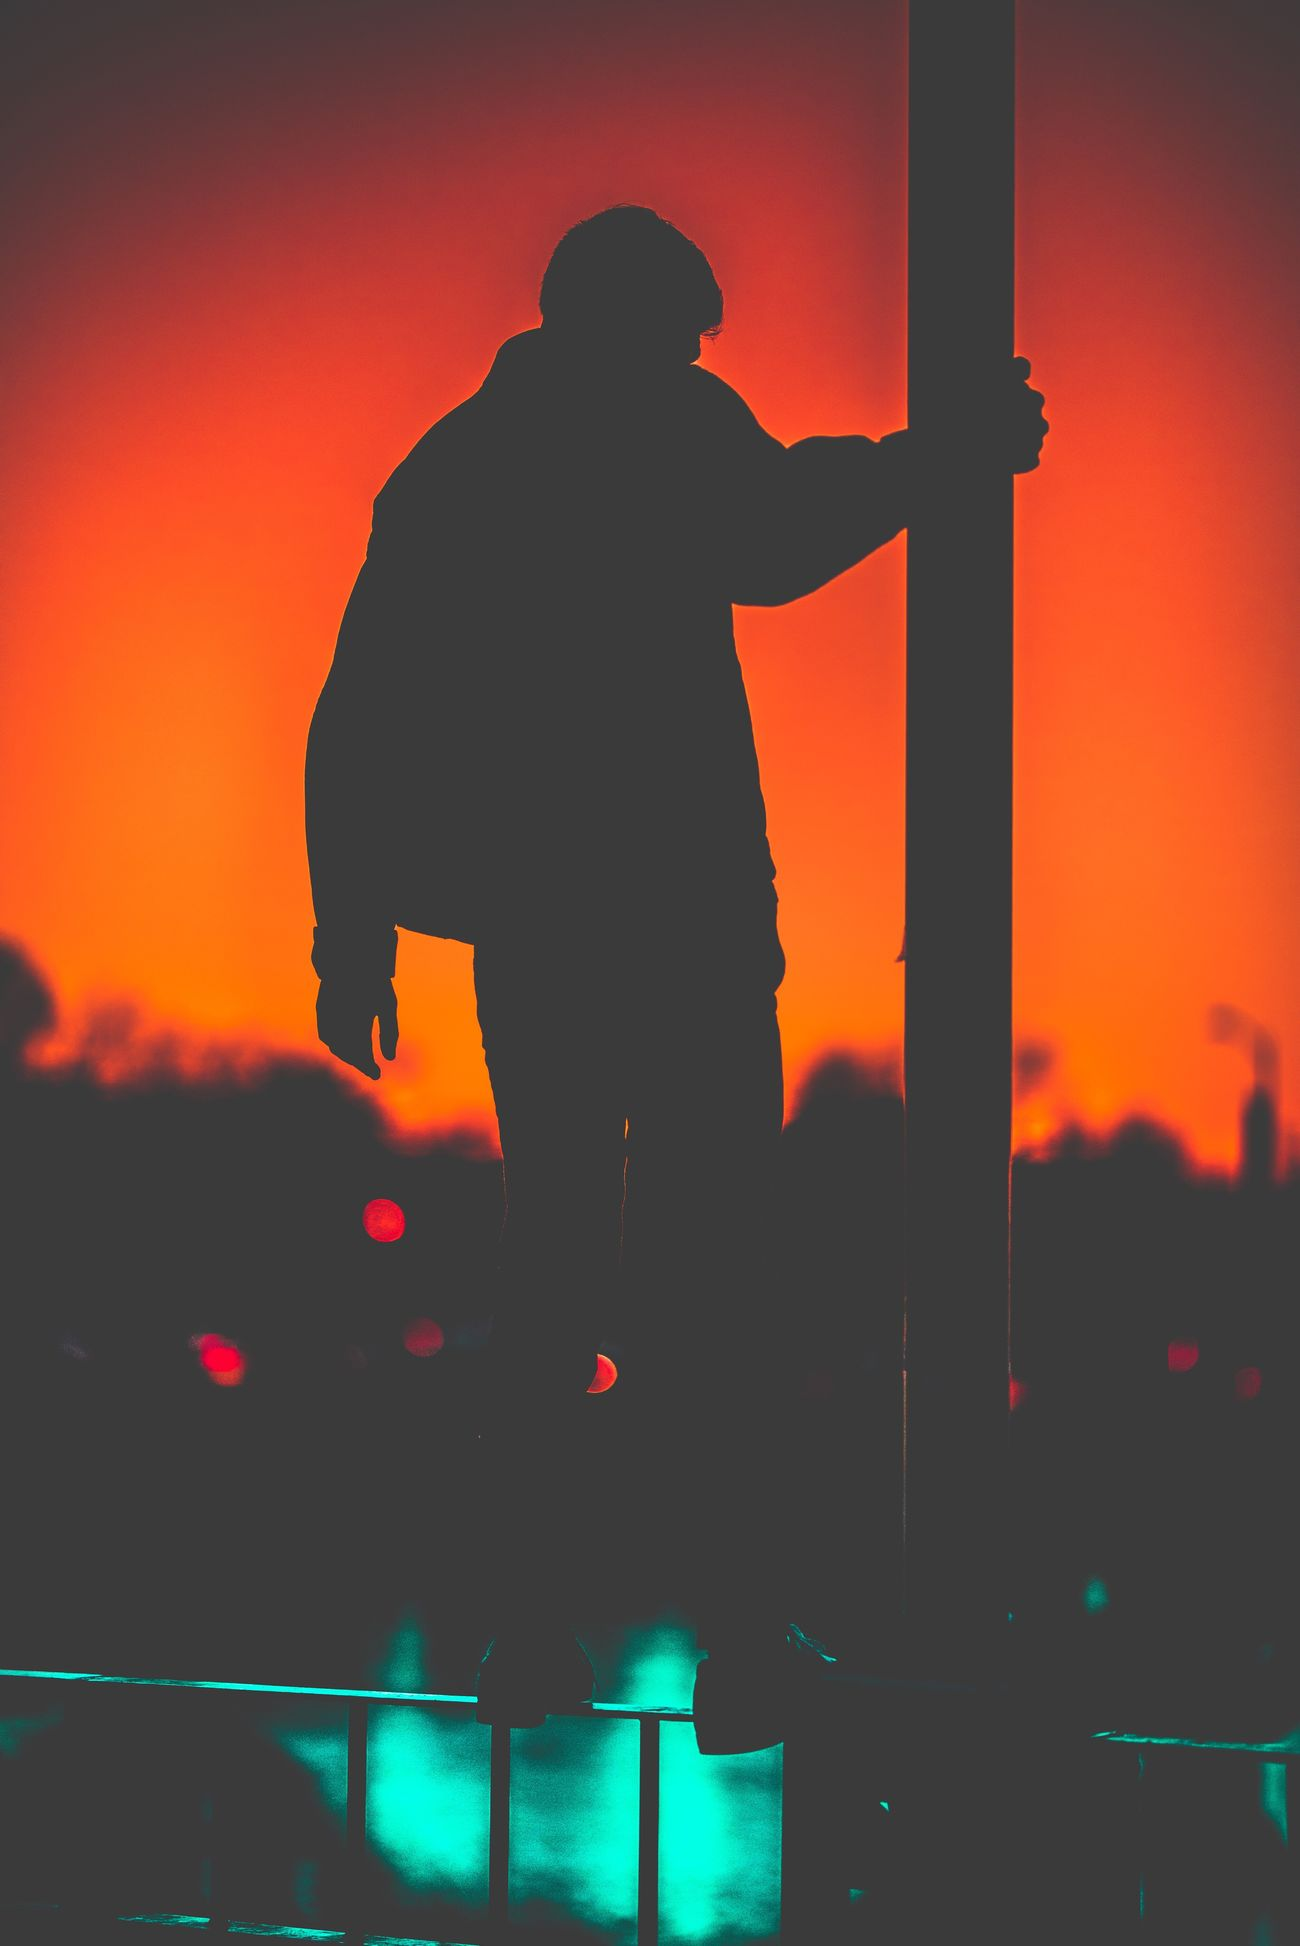 Silhouette One Person Standing Real People One Man Only Men Arts Culture And Entertainment Sunset People Adults Only Outdoors Adult Only Men Day